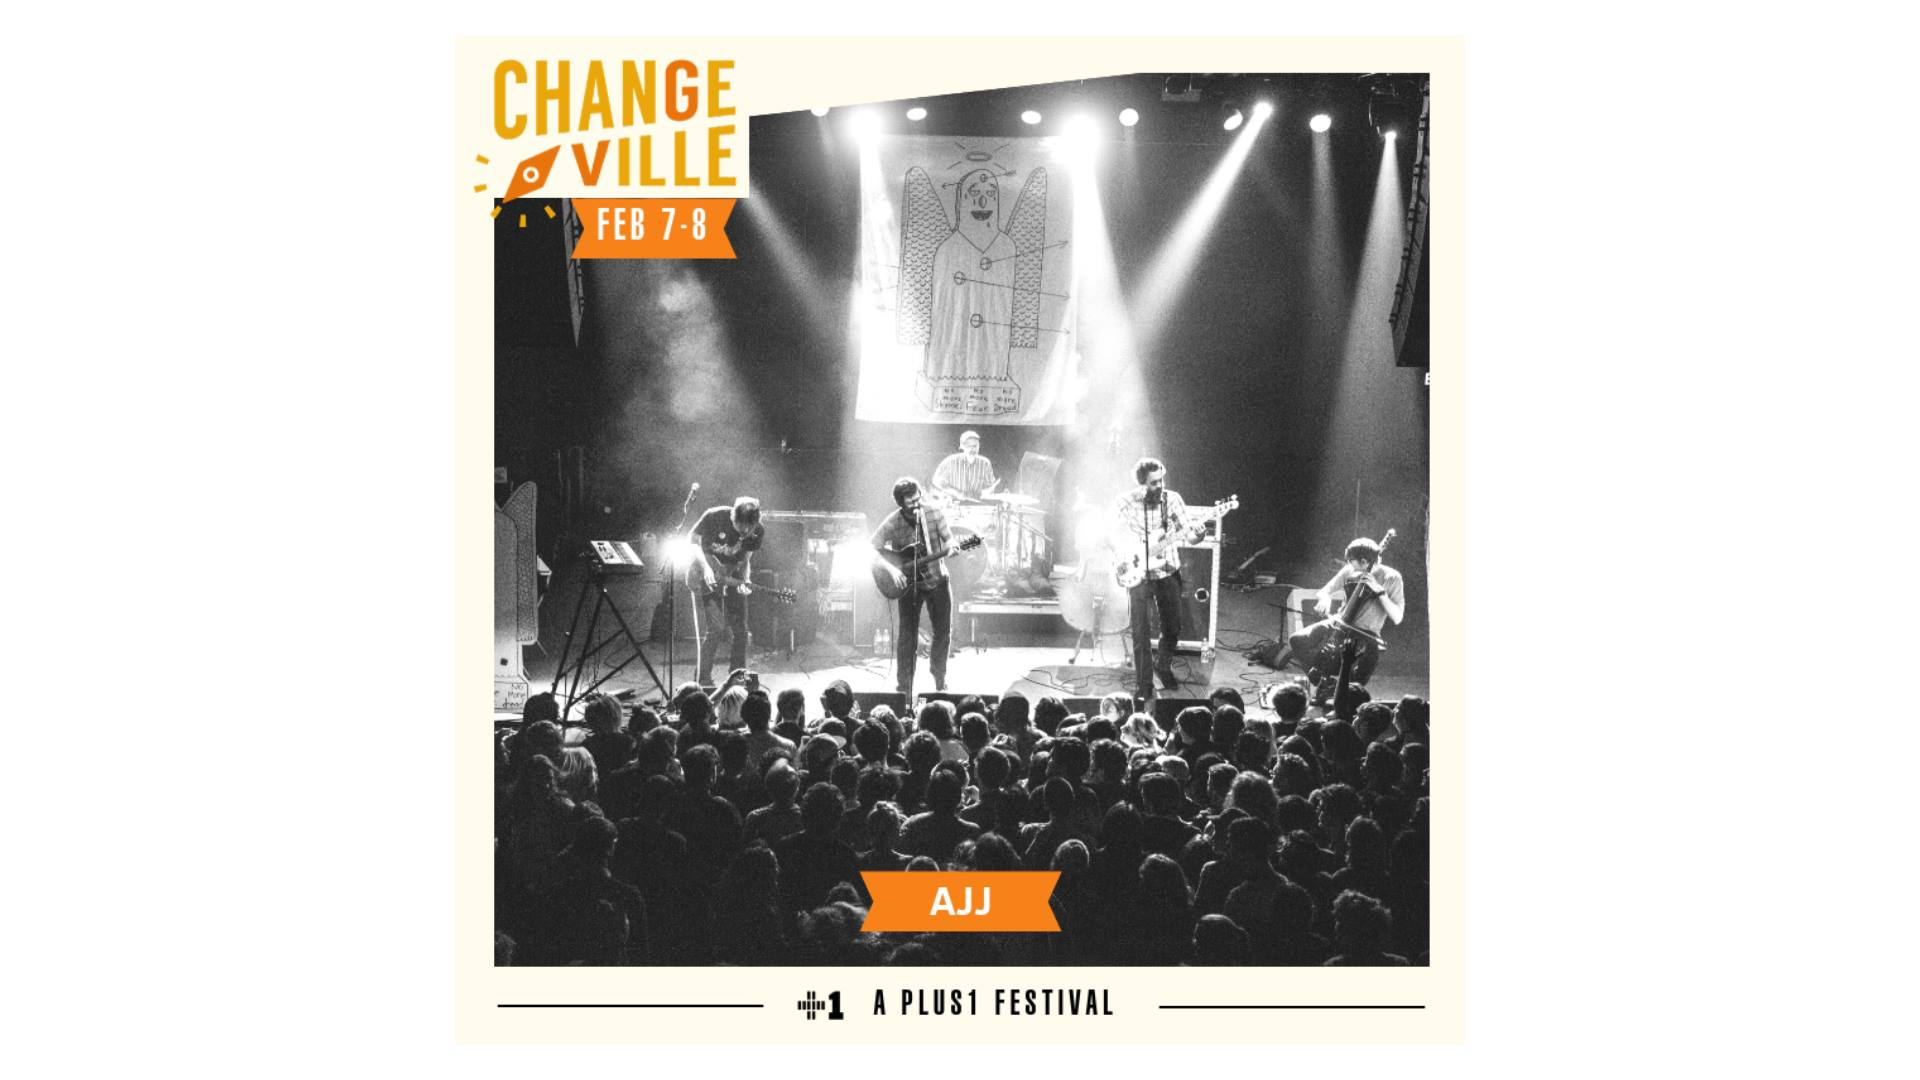 "Featuring  AJJ ! and more!  The Changeville Festival is a downtown music & arts festival featuring local and national artists united by a passion for social change. The two-day festival will take place at venues around the city's downtown such as Bo Diddley Plaza, The Hippodrome, High Dive, Wooly/Atlantic, Civic Media Center, Volta, & more.   Festival passes are available now at  changeville.us/tickets    Hailing from Phoenix, Arizona, *AJJ* has released four full length albums since 2005. Their signature folk-punk sound oftentimes features deceptively upbeat instrumentals accompanying humorously macabre lyrics. It's not unusual for AJJ songs about death, racism, and similar topics to be juxtaposed against a plucky upright bass line. Their Facebook description boasts, ""We're super good, I promise."" In an effort to relinquish any connection to former President Andrew Jackson and to avoid disrespecting Muslims, the former Andrew Jackson Jihad rebranded themselves to AJJ in 2016. ""As the world changed, and as we changed as people, it just got more difficult to give a convincing answer for why our band was called that […] The act of striving to do better is a constant theme in our work, that's where the name [change] was coming from,"" frontman Sean Bonnette told AV Music.  Through a charity partnership with  Plus 1 , $1 from each ticket sale will be donated to two different charity organizations. Local organization Gainesville Girls Rock Camp and national organization CEEAS (Center for Educational Excellence in Alternative Settings) have been chosen as 2019's charities. Changeville will also be collecting canned goods and donations for Peaceful Paths and Grace Marketplace.   Changeville is a two-day social change festival, in partnership with UF College Of Journalism & Communications annual frank conference in downtown Gainesville that brings together students, professionals and artists across a variety of platforms. The festival includes music, comedy, award-winning films, tech, poetry and discussion panels/workshops.   PLUS1 is an initiative that channels the collective energy of a concert to catalyze social change. By partnering with performing artists, PLUS1 raises and grants millions of dollars to high impact nonprofits addressing our most serious global challenges around Access, Equity, and Dignity. The work begins with a $1 per ticket add-on fundraising tool that makes fundraising simple and seamless. Beyond the dollar, PLUS1 supports artists as educators and advocates, fueling their passion, reach, impact. To date, PLUS1 has raised and granted over $7 million, and served as the connective tissue between over 150 artists, millions of their fans, and 100s of leading social justice organizations tackling global injustice.   AJJ   Links:   https://www.ajjtheband.com/   www.changeville.us/tickets    https://www.facebook.com/changevillle/    www.frank.jou.ufl.edu    www.plus1.org    https://twitter.com/Changeville    https://www.instagram.com/changeville/"